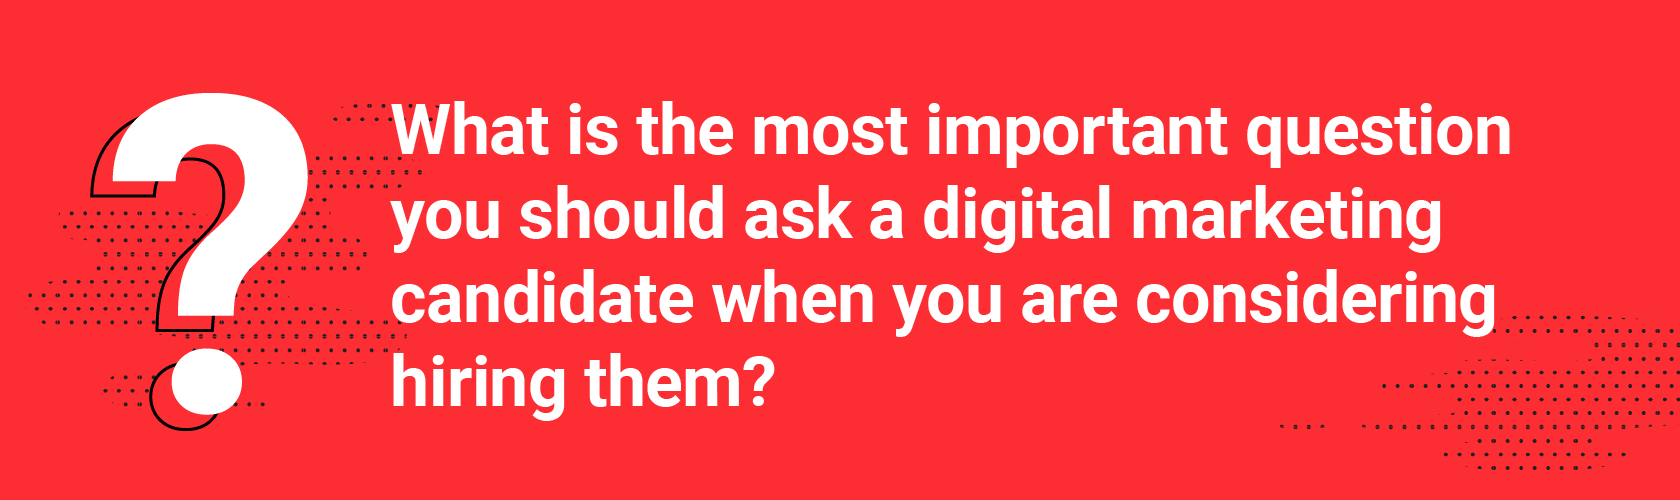 What is the most important question you should ask a digital marketing candidate when you are considering hiring them?